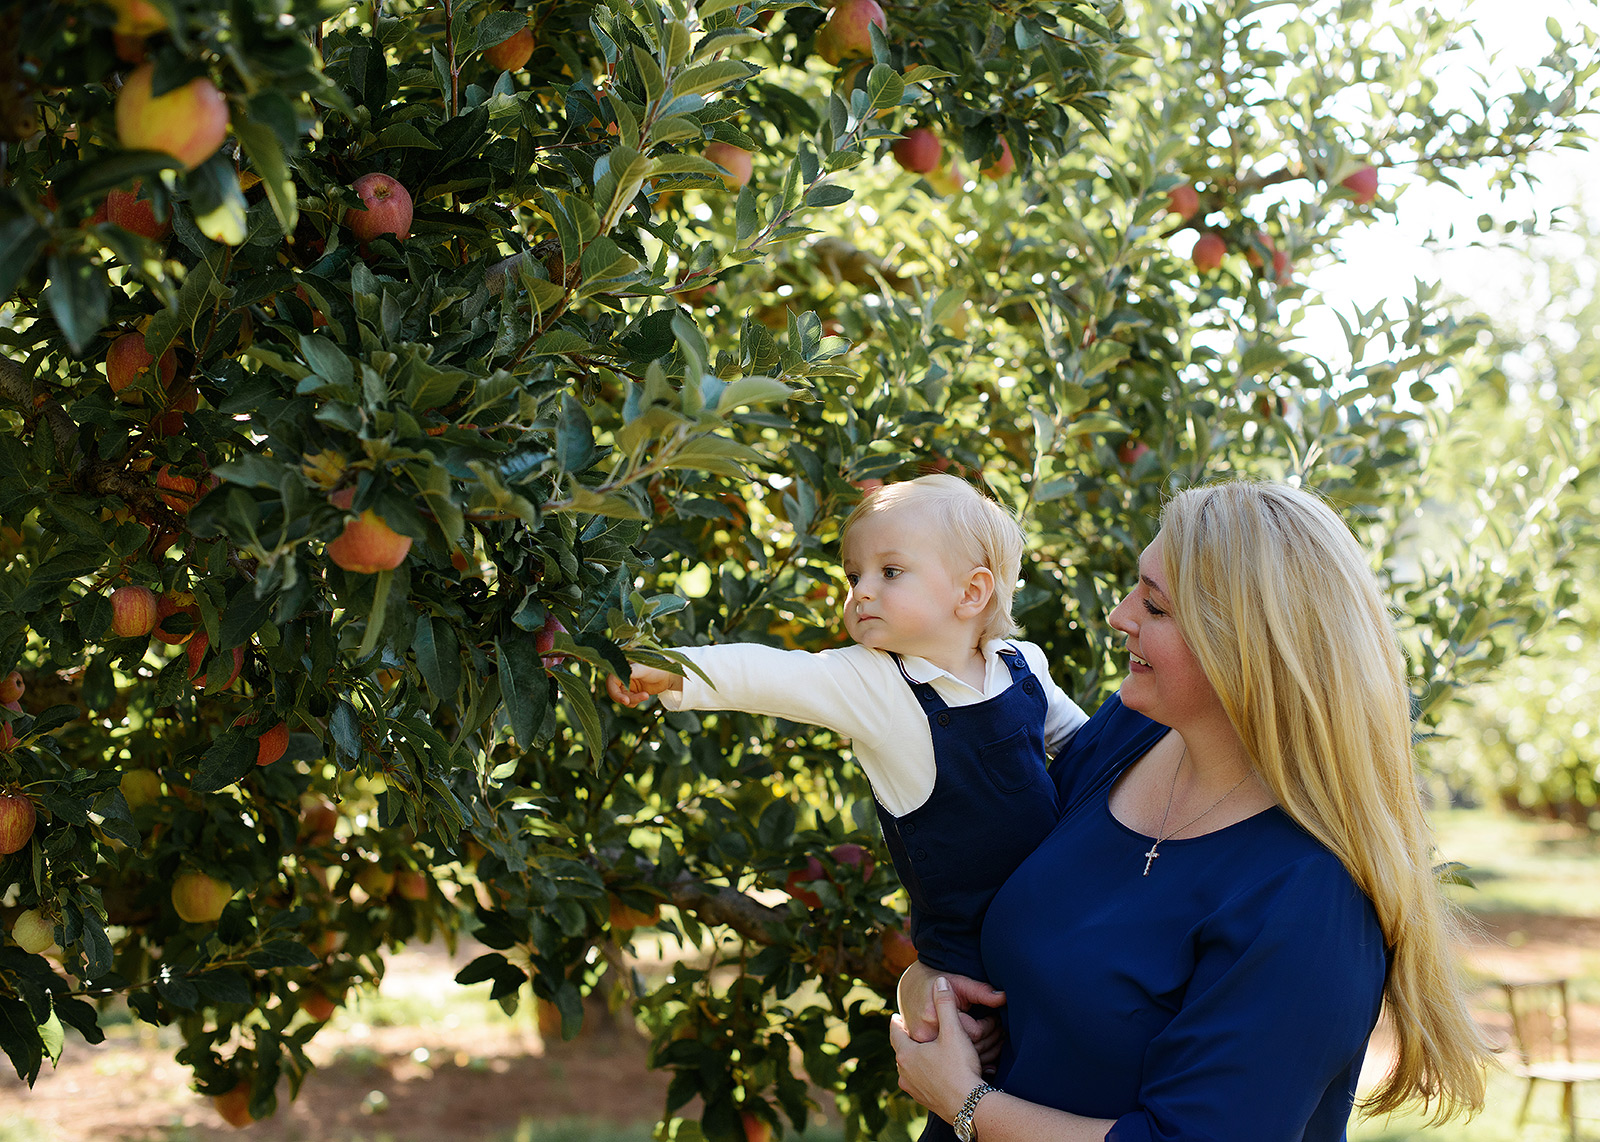 Mother and Son Picking Apples in Apple Hill